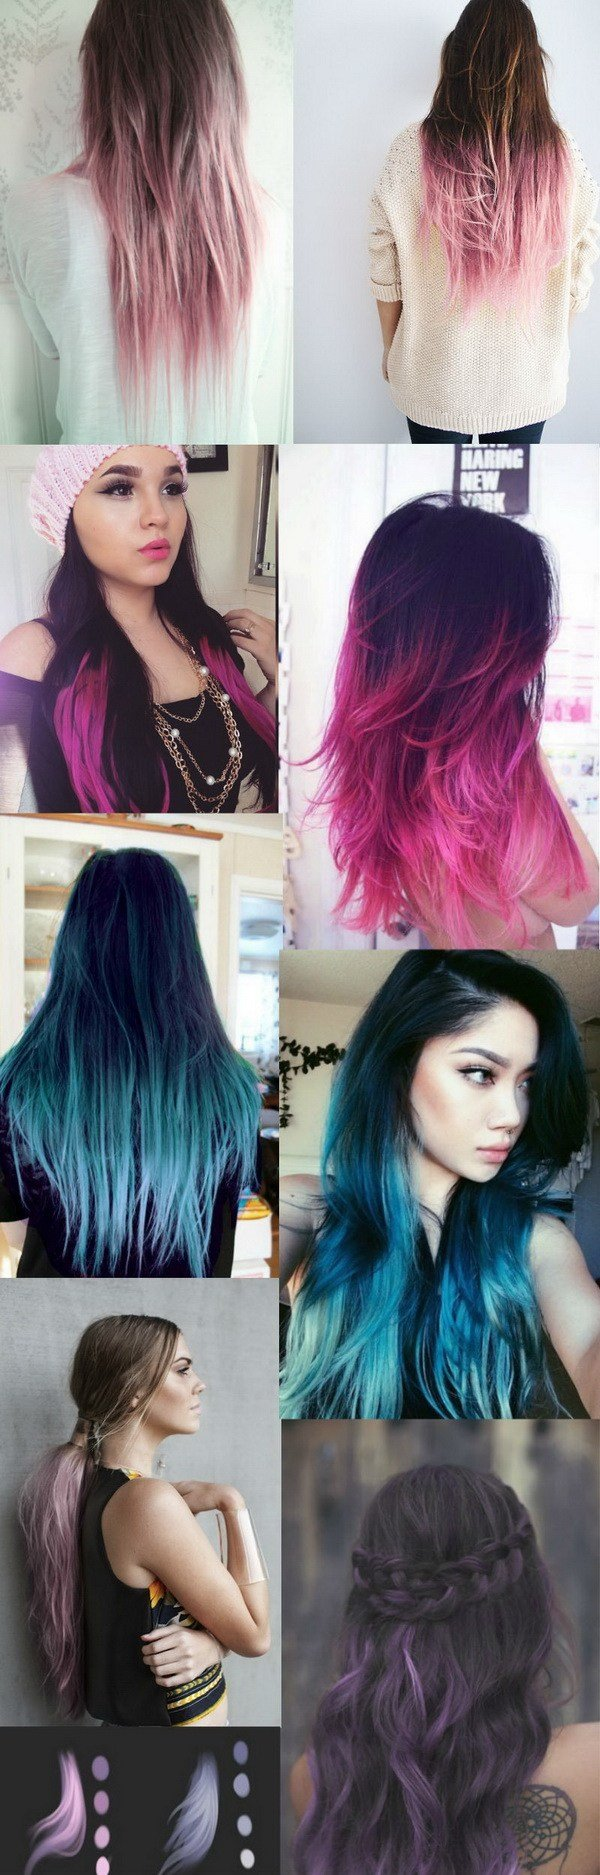 The Best Colored Ombre Hair Trends 2015 Archives Vpfashion Vpfashion Pictures